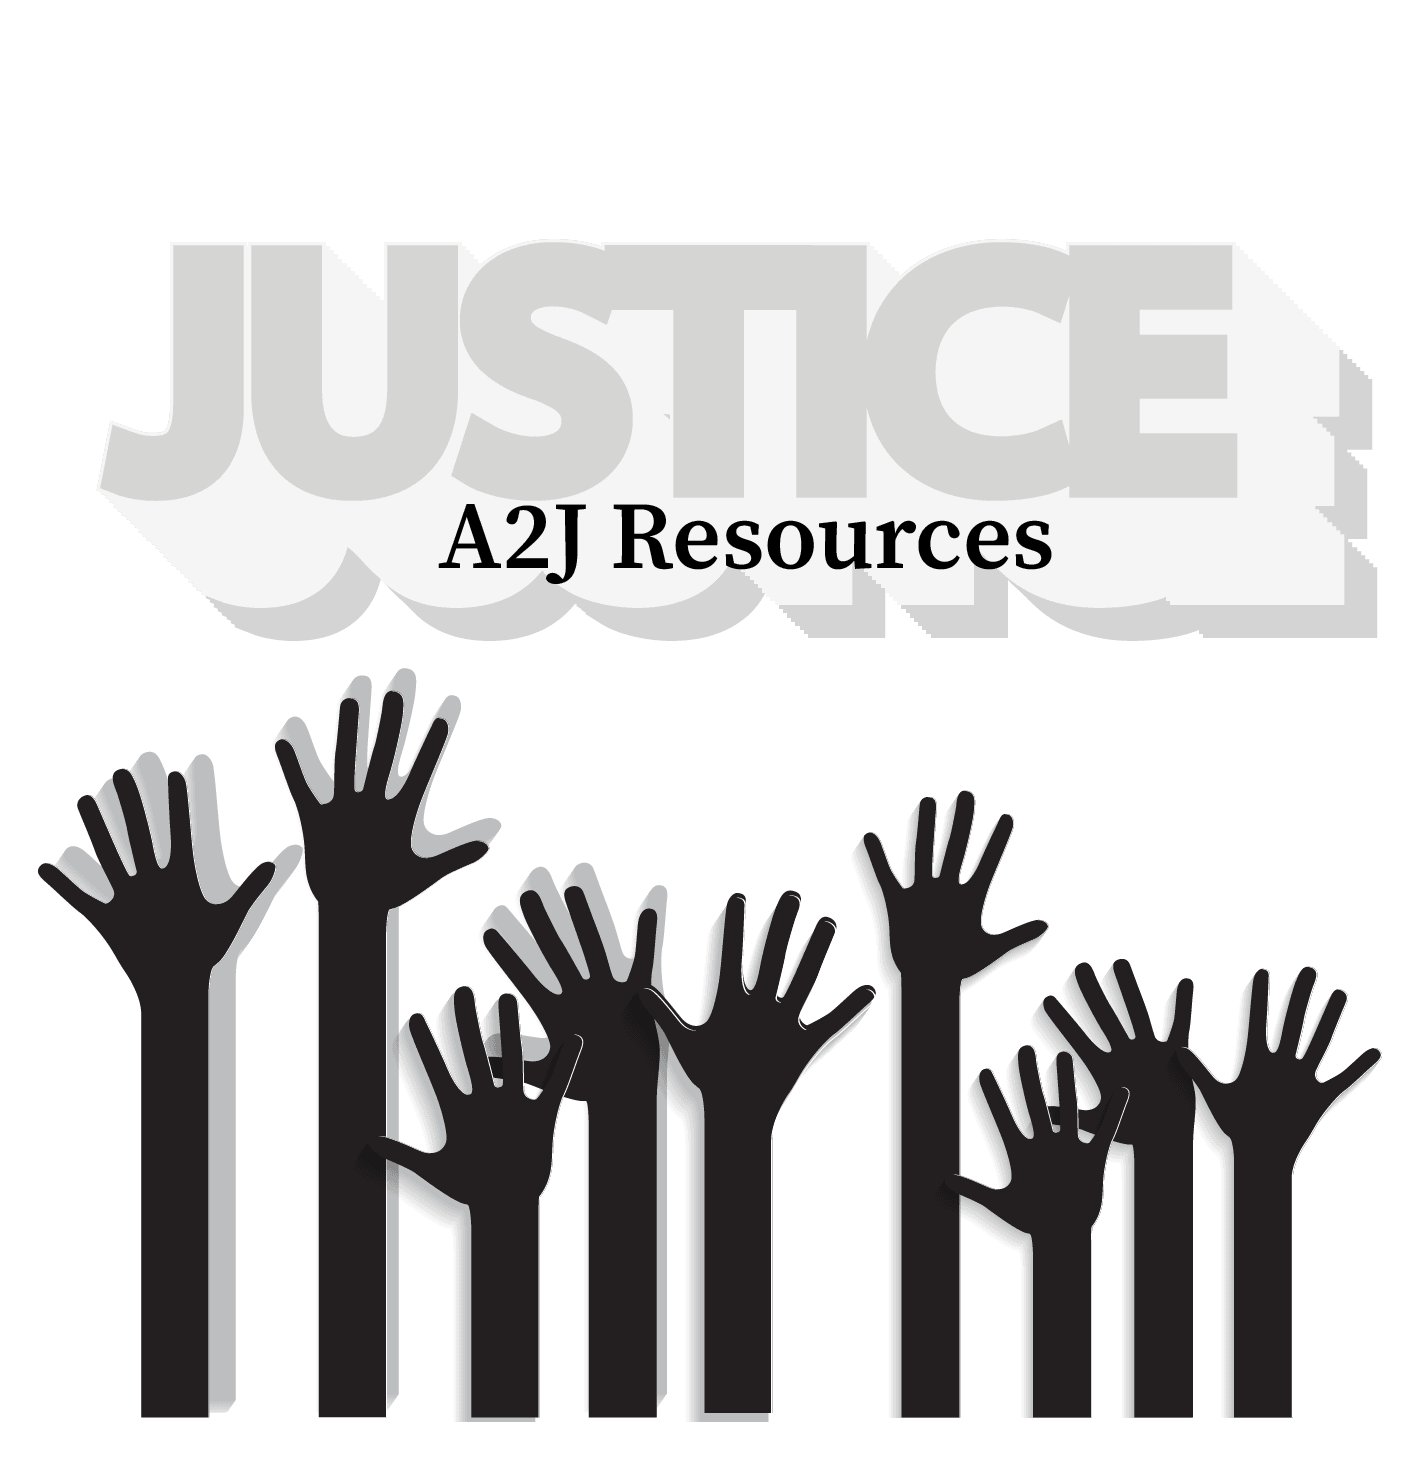 A2J resources